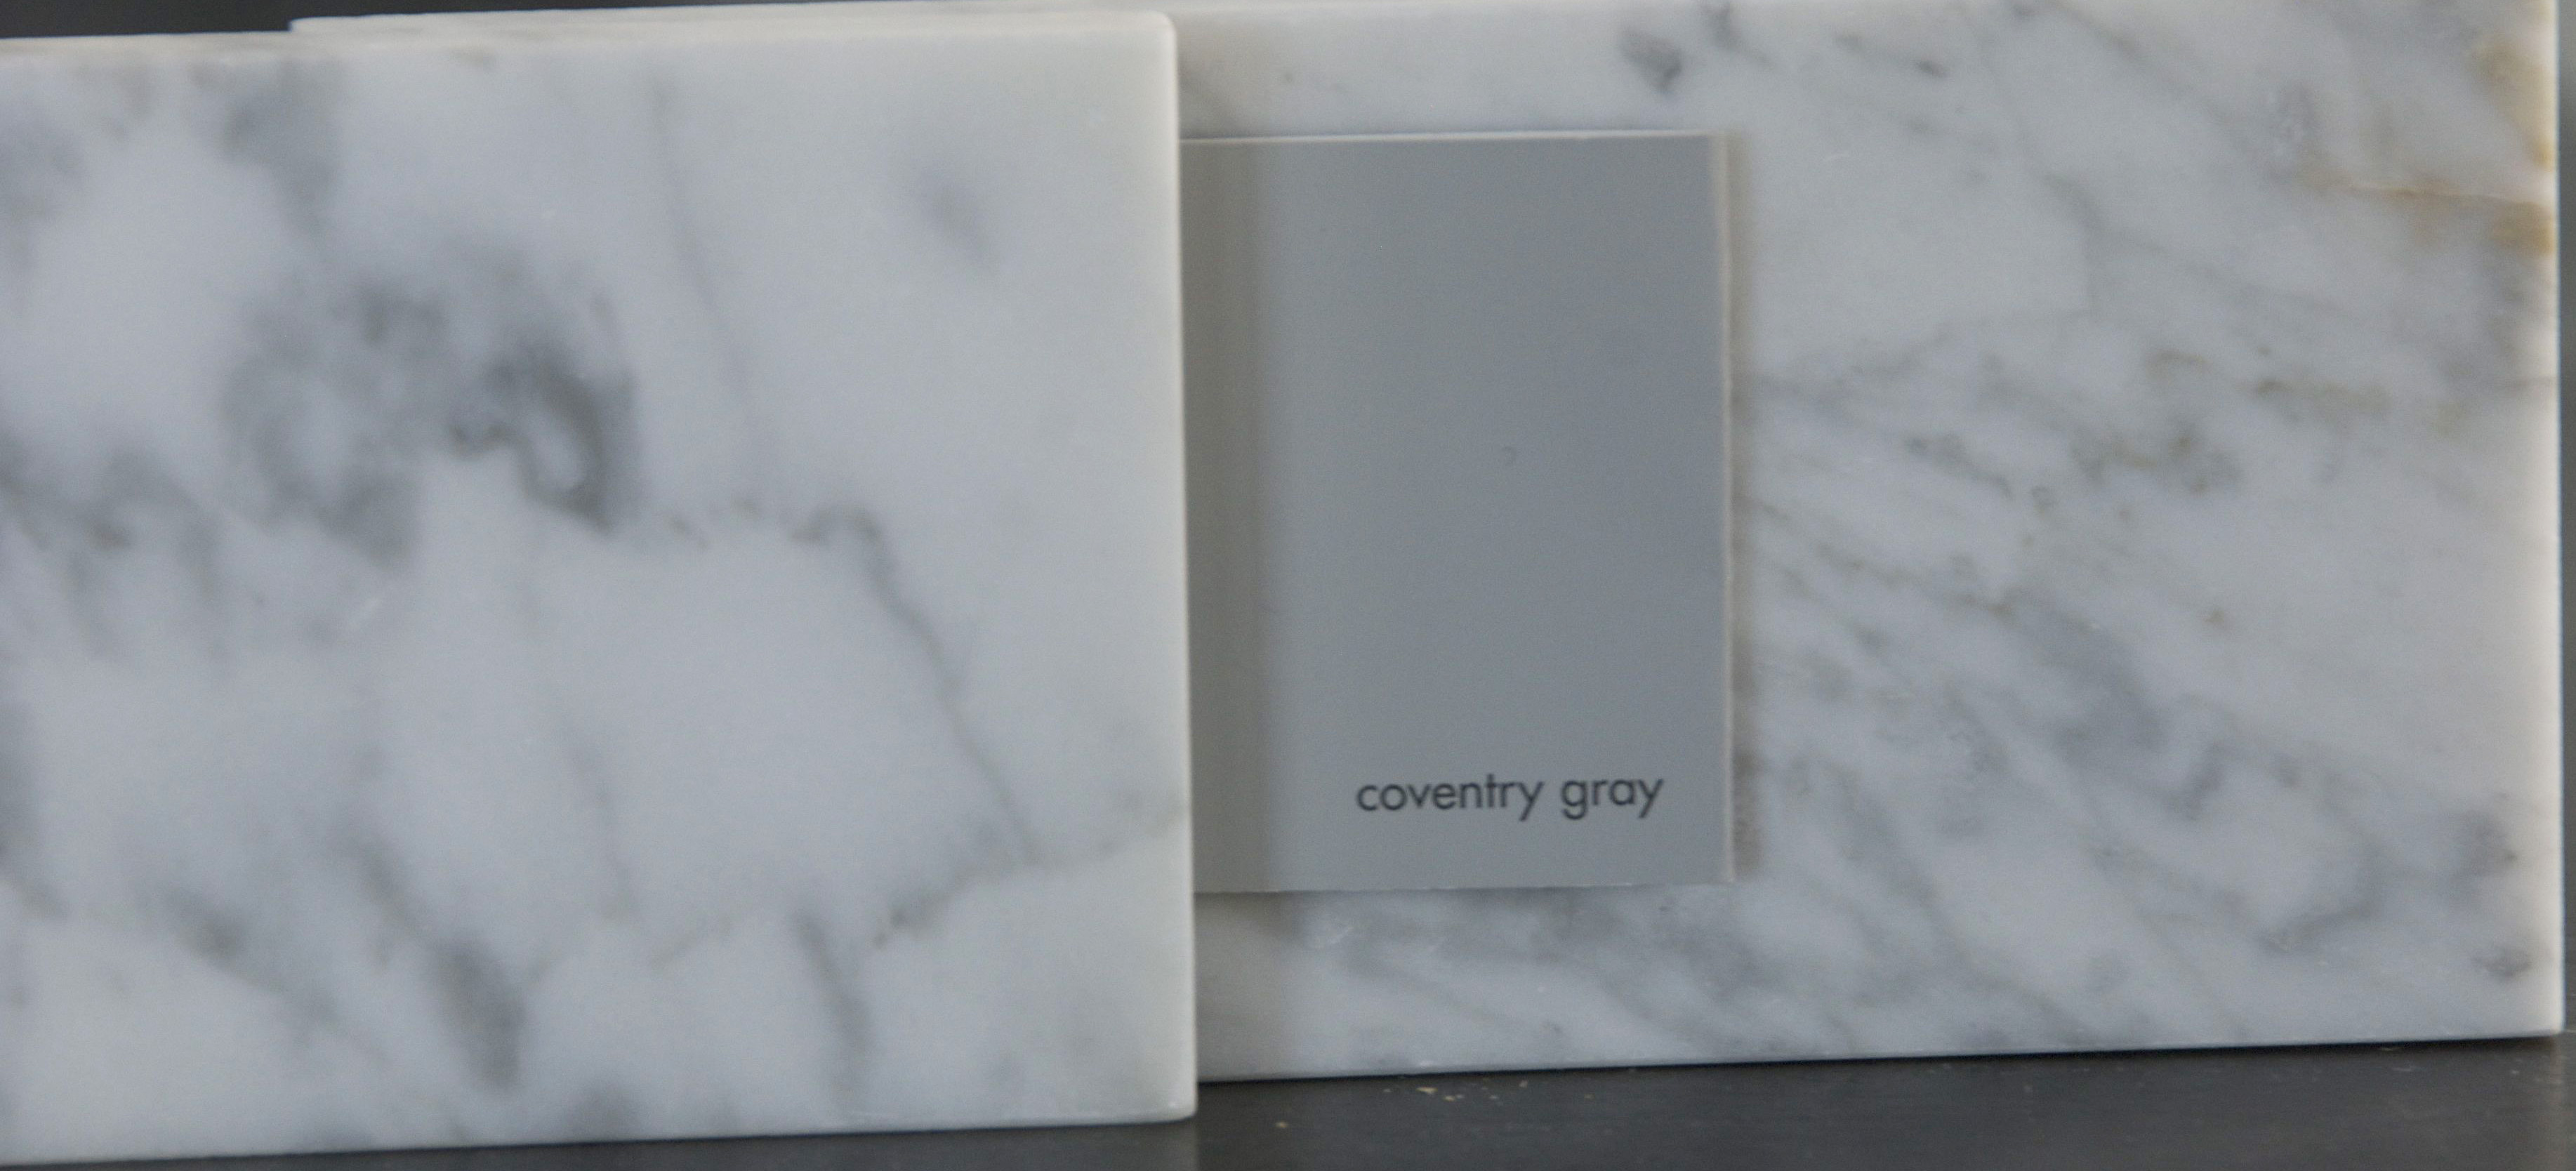 Coventry kitchens and bathrooms - Benjamin Moore Coventry Gray